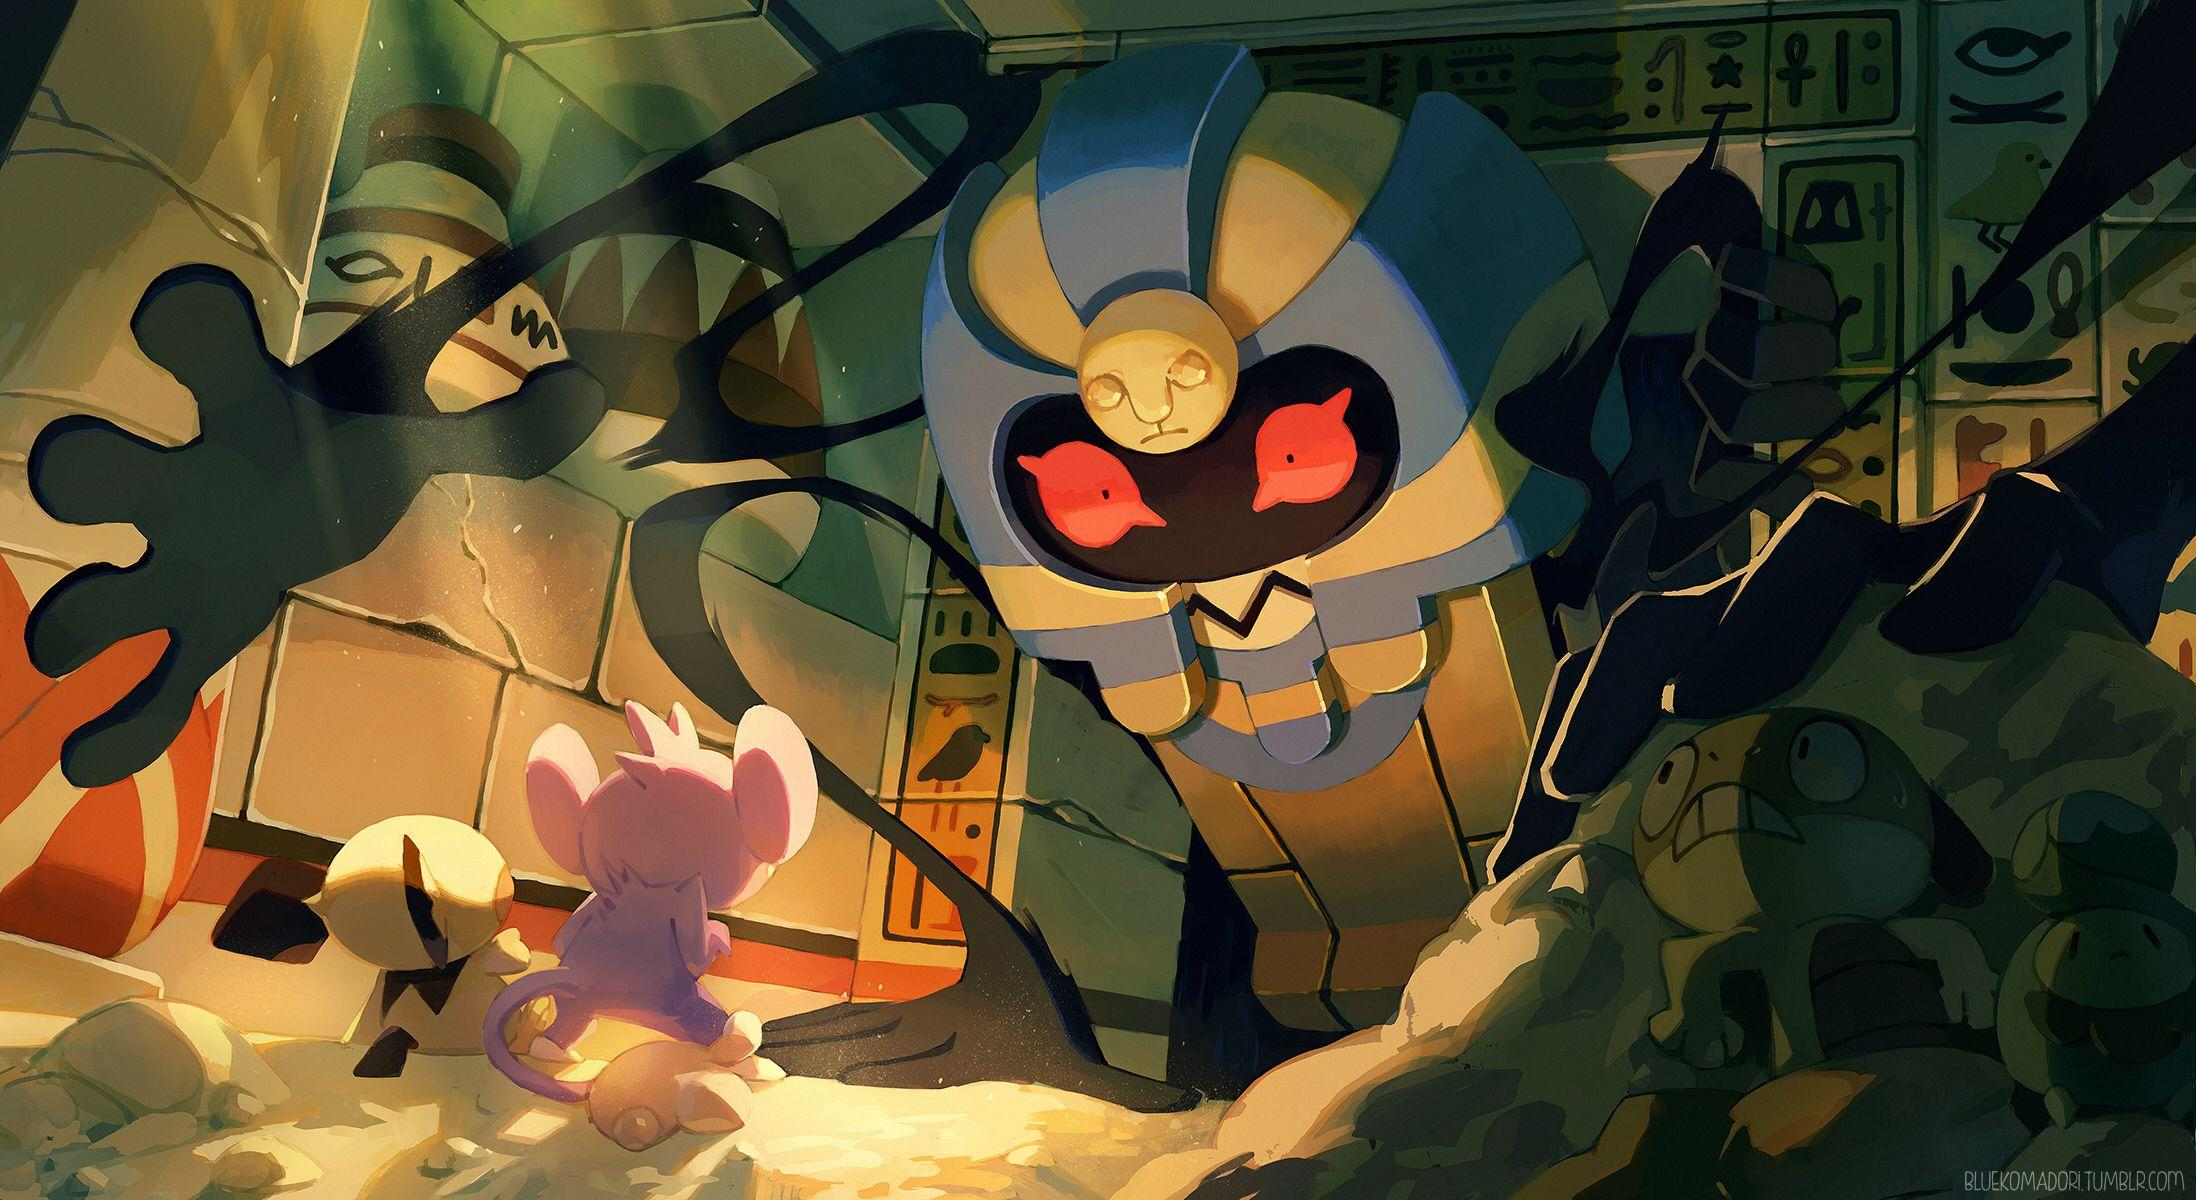 Cofagrigus art by BlueKomadori [2196x1200] : wallpapers